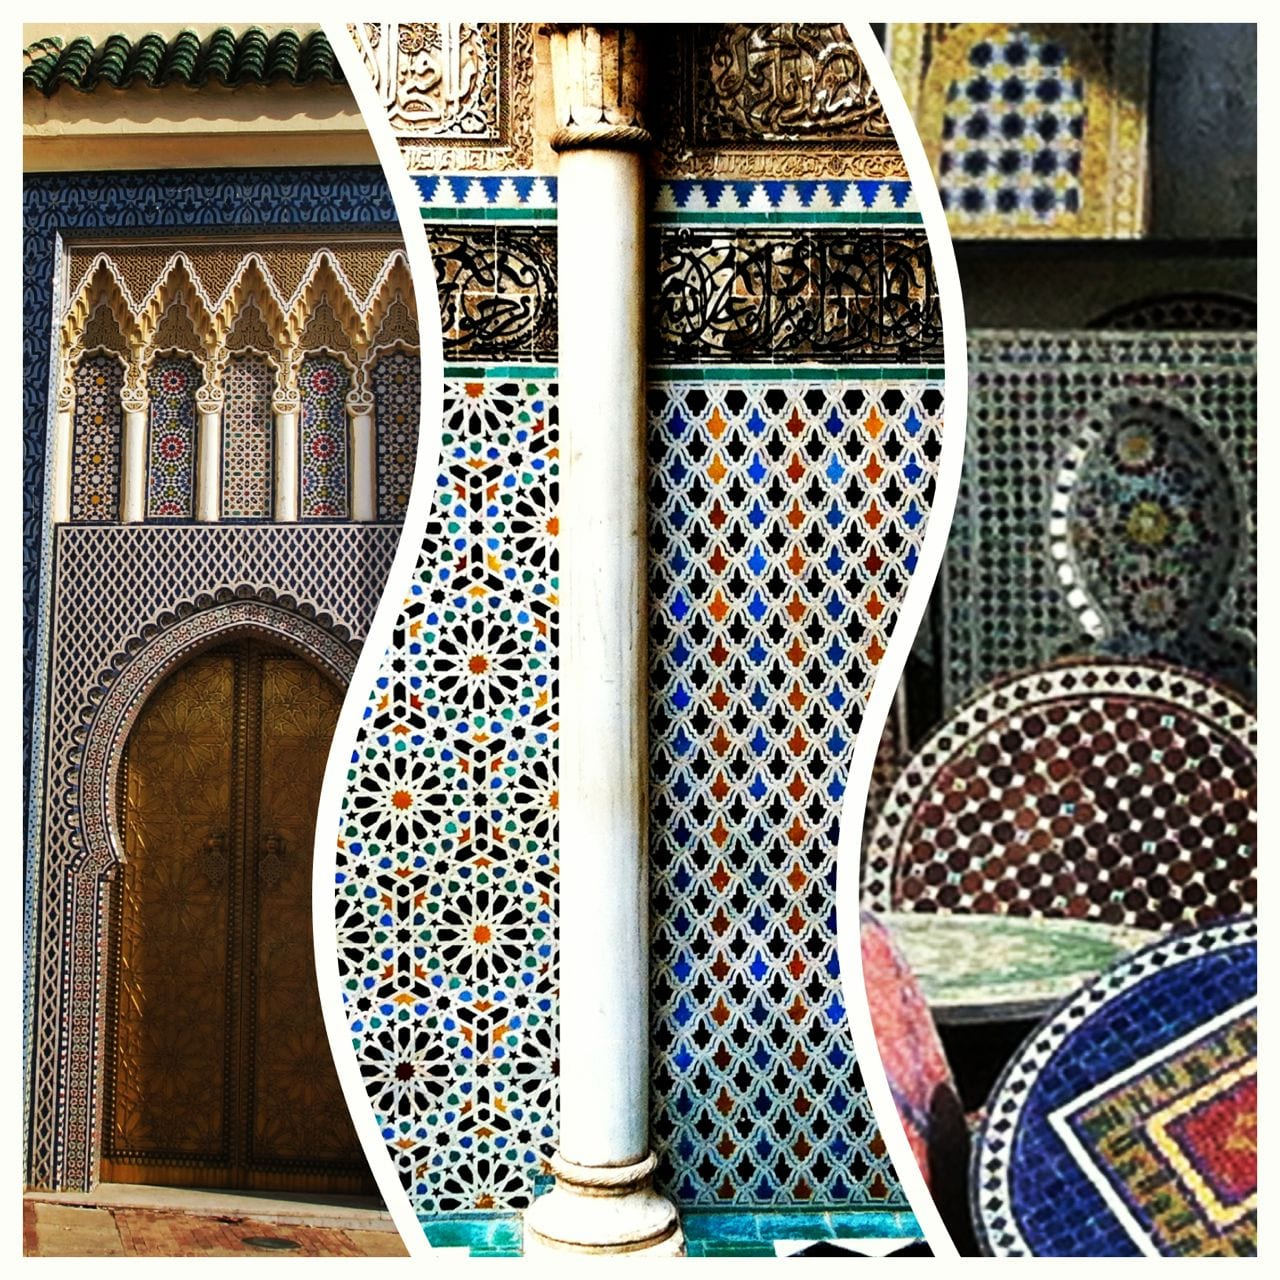 angie at home: how my trip to morocco inspired my design style